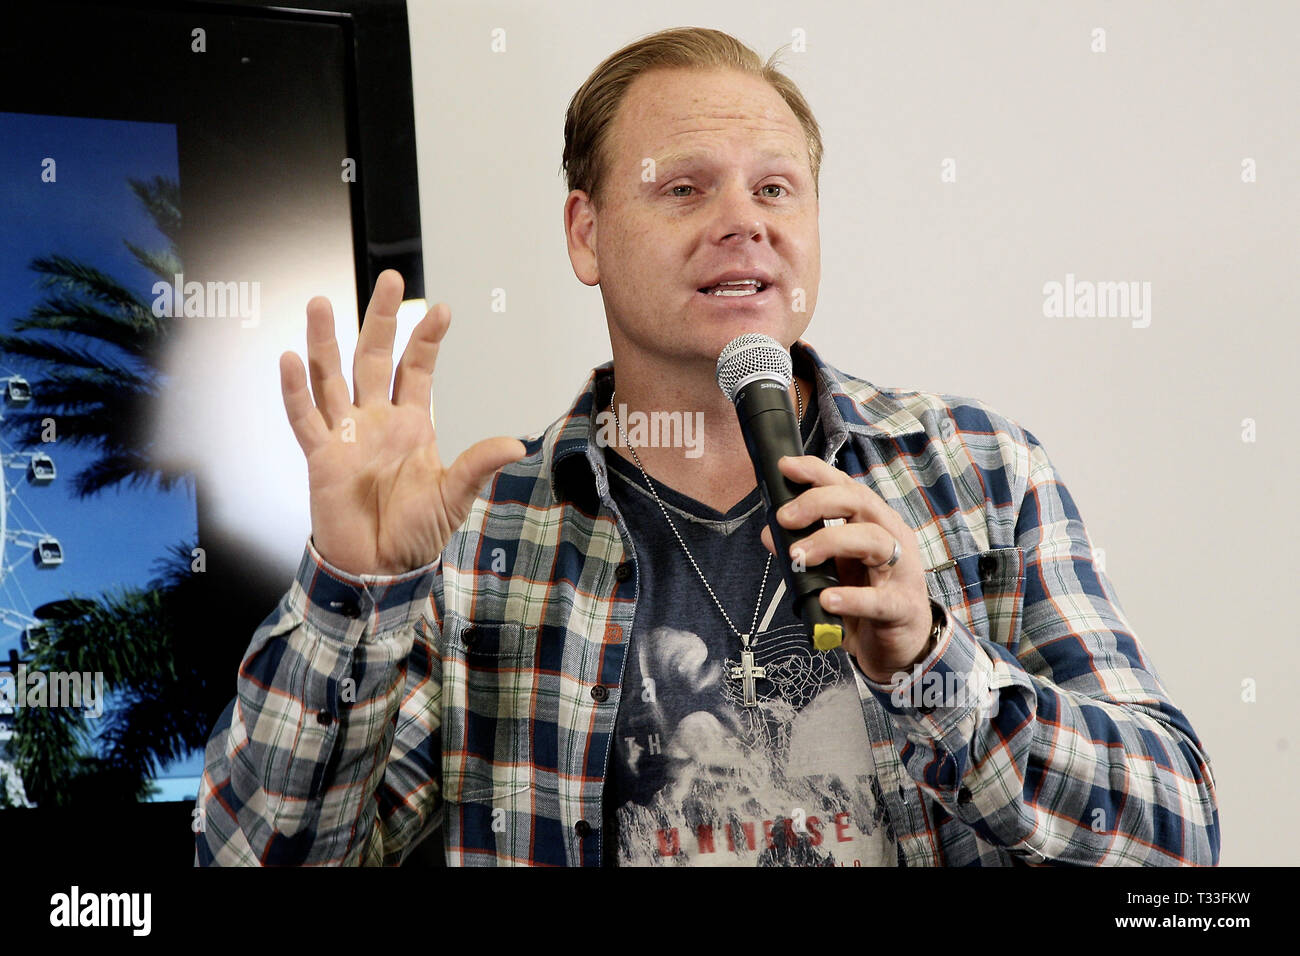 New York, NY - April 13:  Nik Wallenda, speaks at a press conference where he revealed his next feat will take place on April 29, 2015 at the soon-to-be-unveiled Orlando Eye, located in Orlando, Florida.. Wallenda will attempt to walk on top of the giant observation wheel without a tether and without a wire while it is moving. Standing 400 feet tall, the Orlando Eye forms part of the I-Drive 360 entertainment complex, which celebrates its grand opening this month and is located in the heart of OrlandoÔs newly revitalized International ÔI-DriveÔ District. The press conference took place on Apri - Stock Image